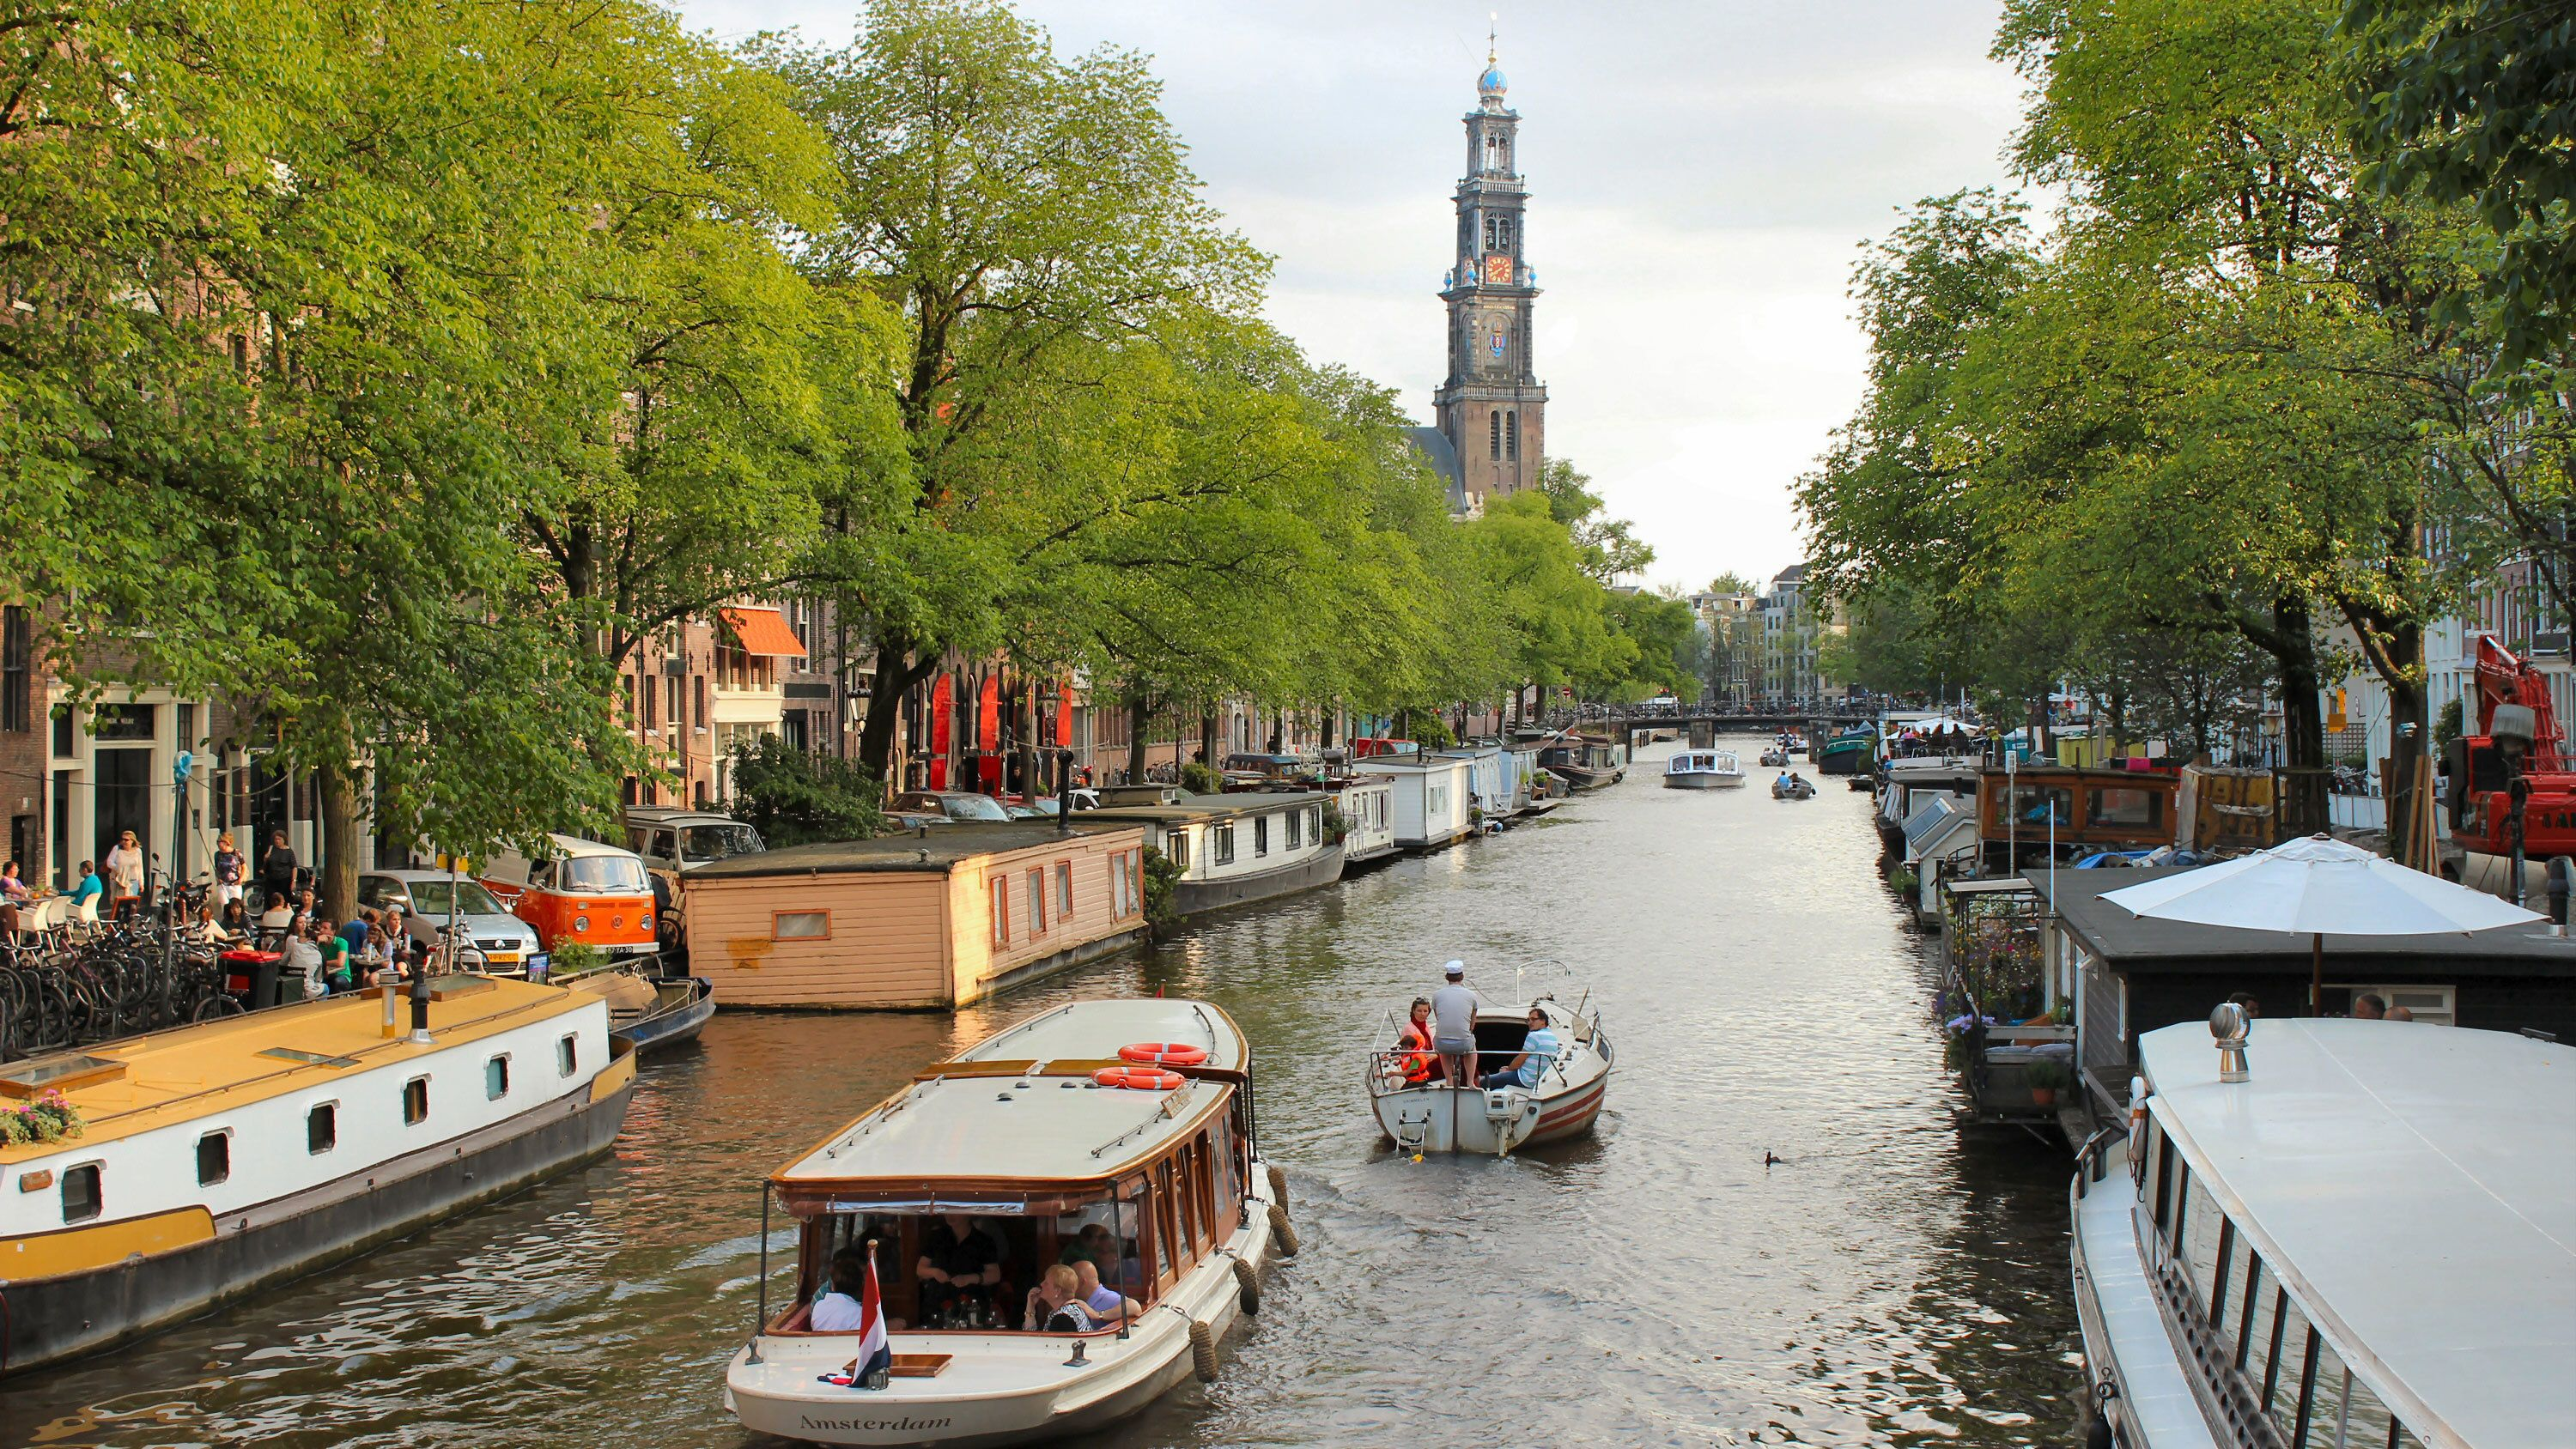 Cruise boat in canal in Amsterdam